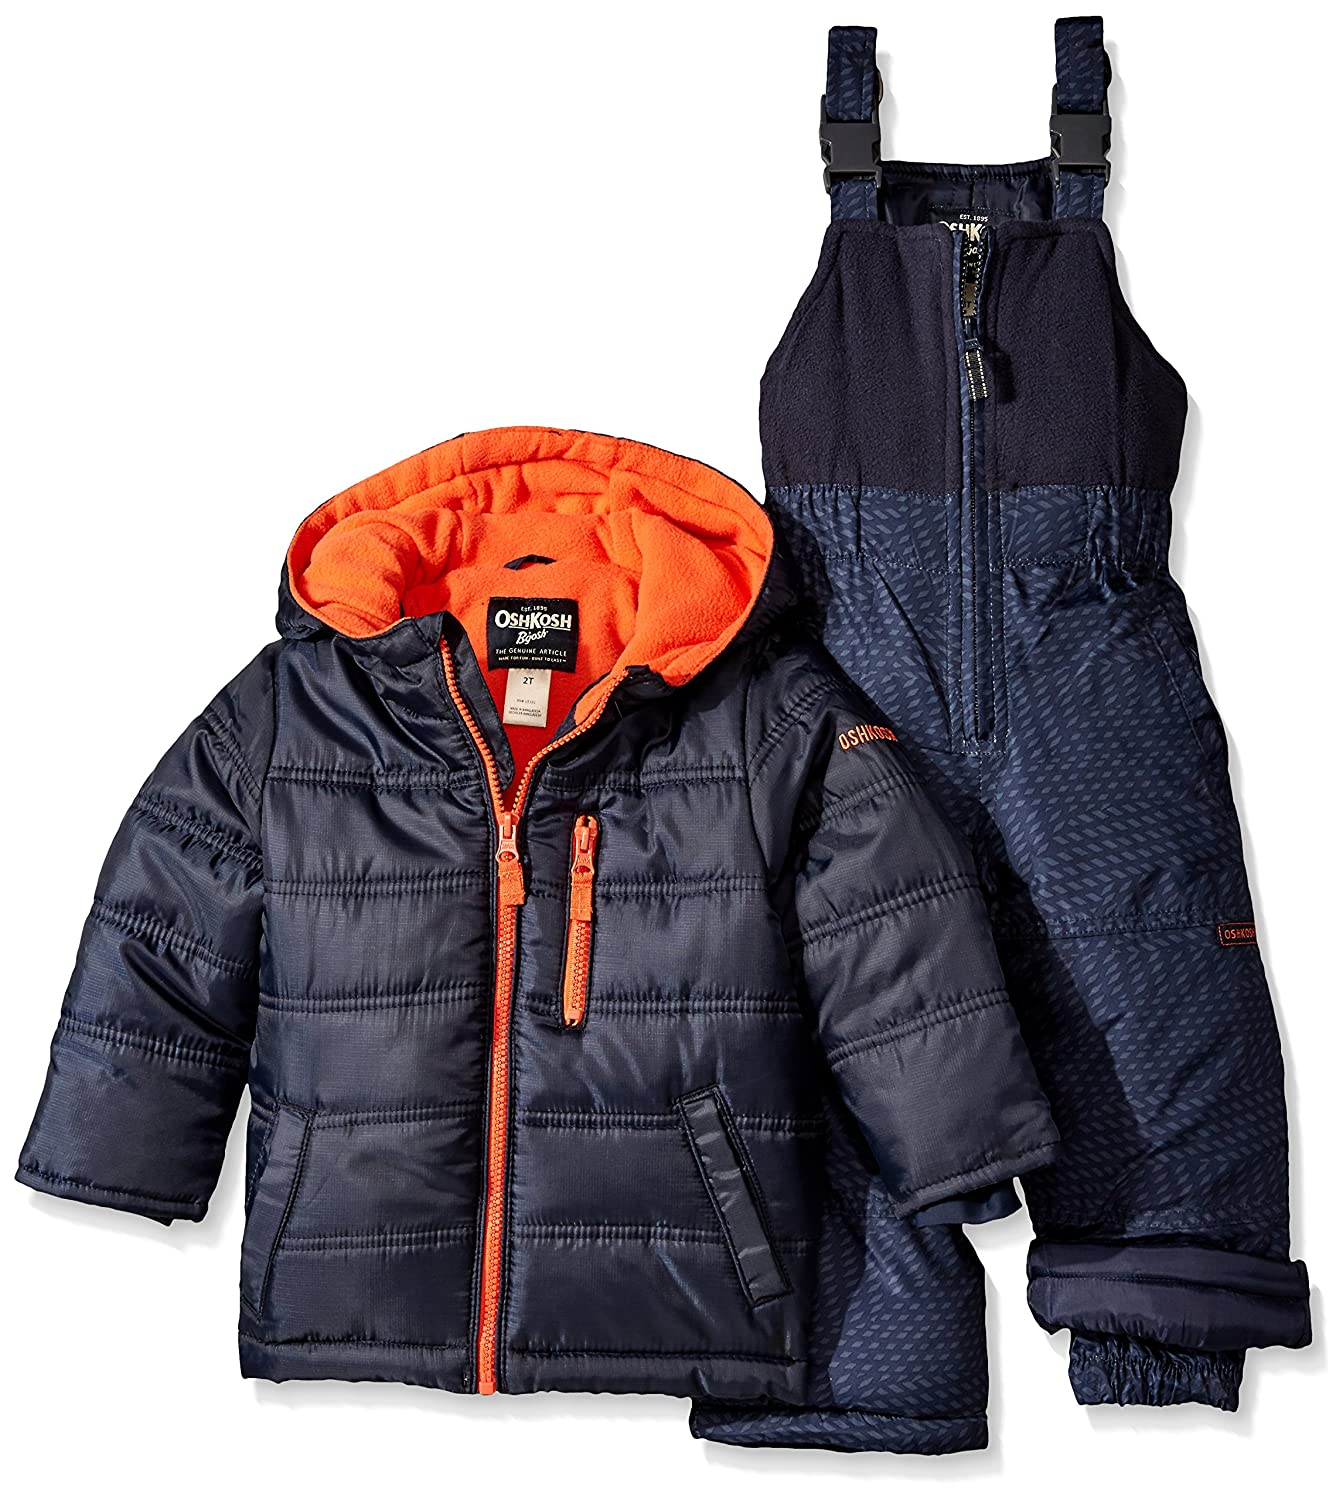 OshKosh Boys Snowsuit with Puffer Coat Navy 4 B2158S93